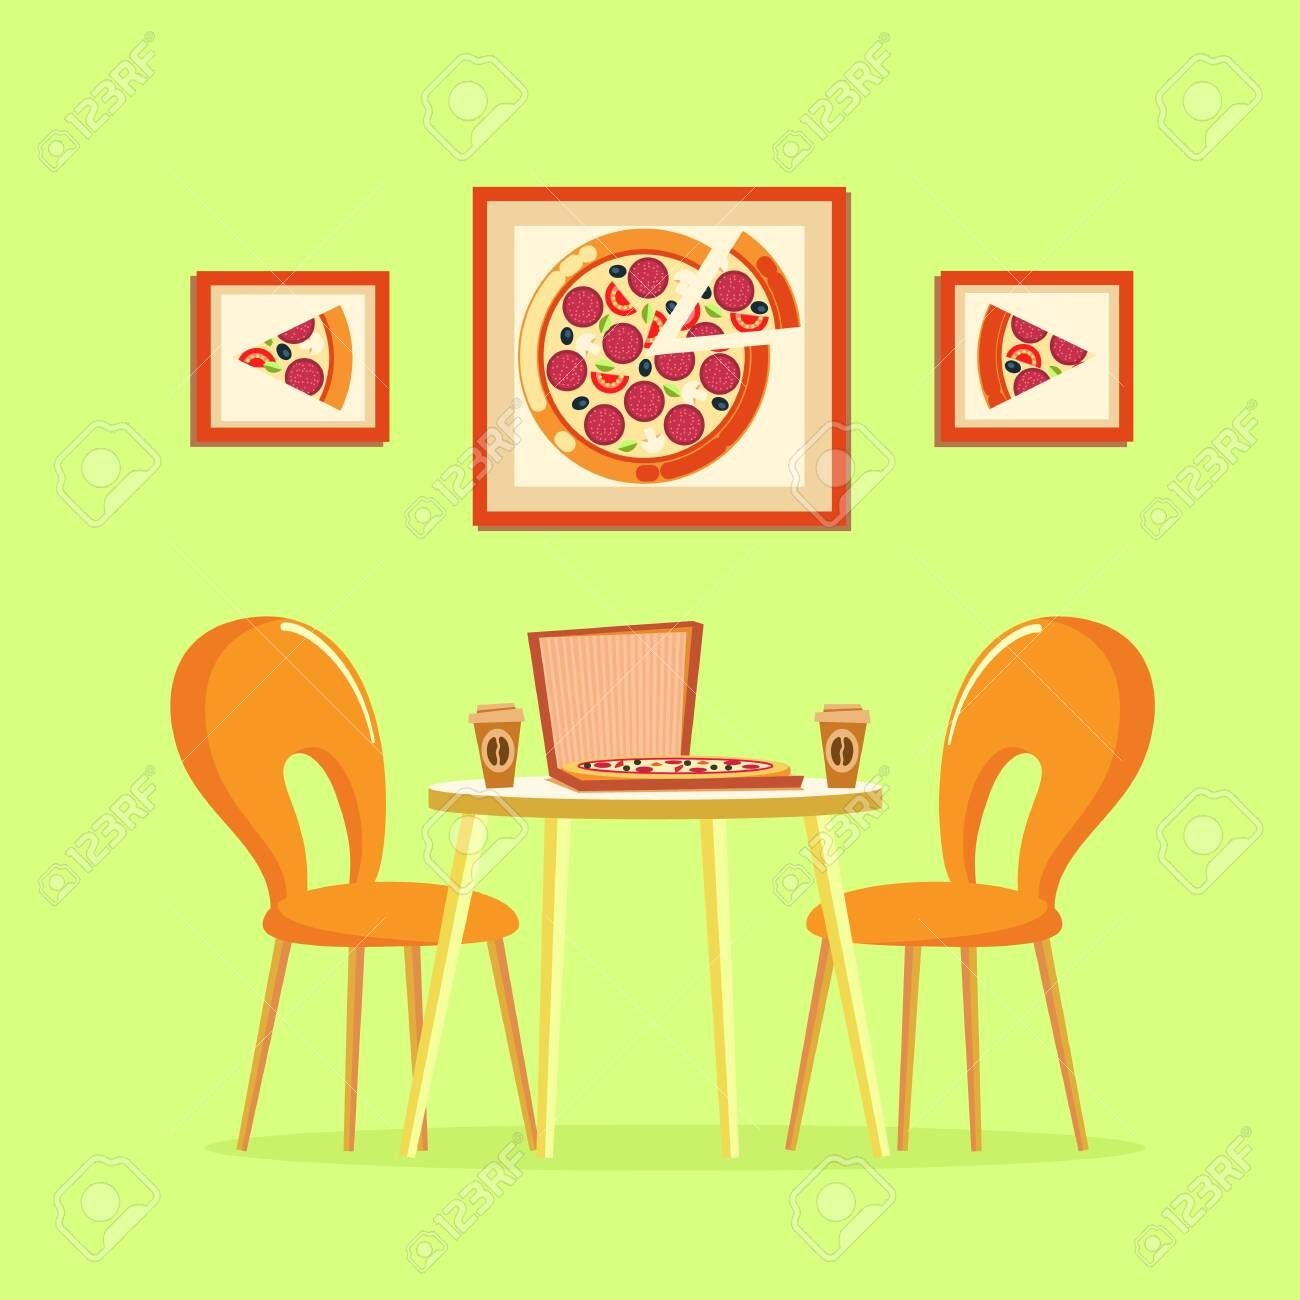 Restaurant table with pizza pictures decoration on wall vector Box with Italian pizzeria slices of prepared meal with tomatoes salami cheese ingredients